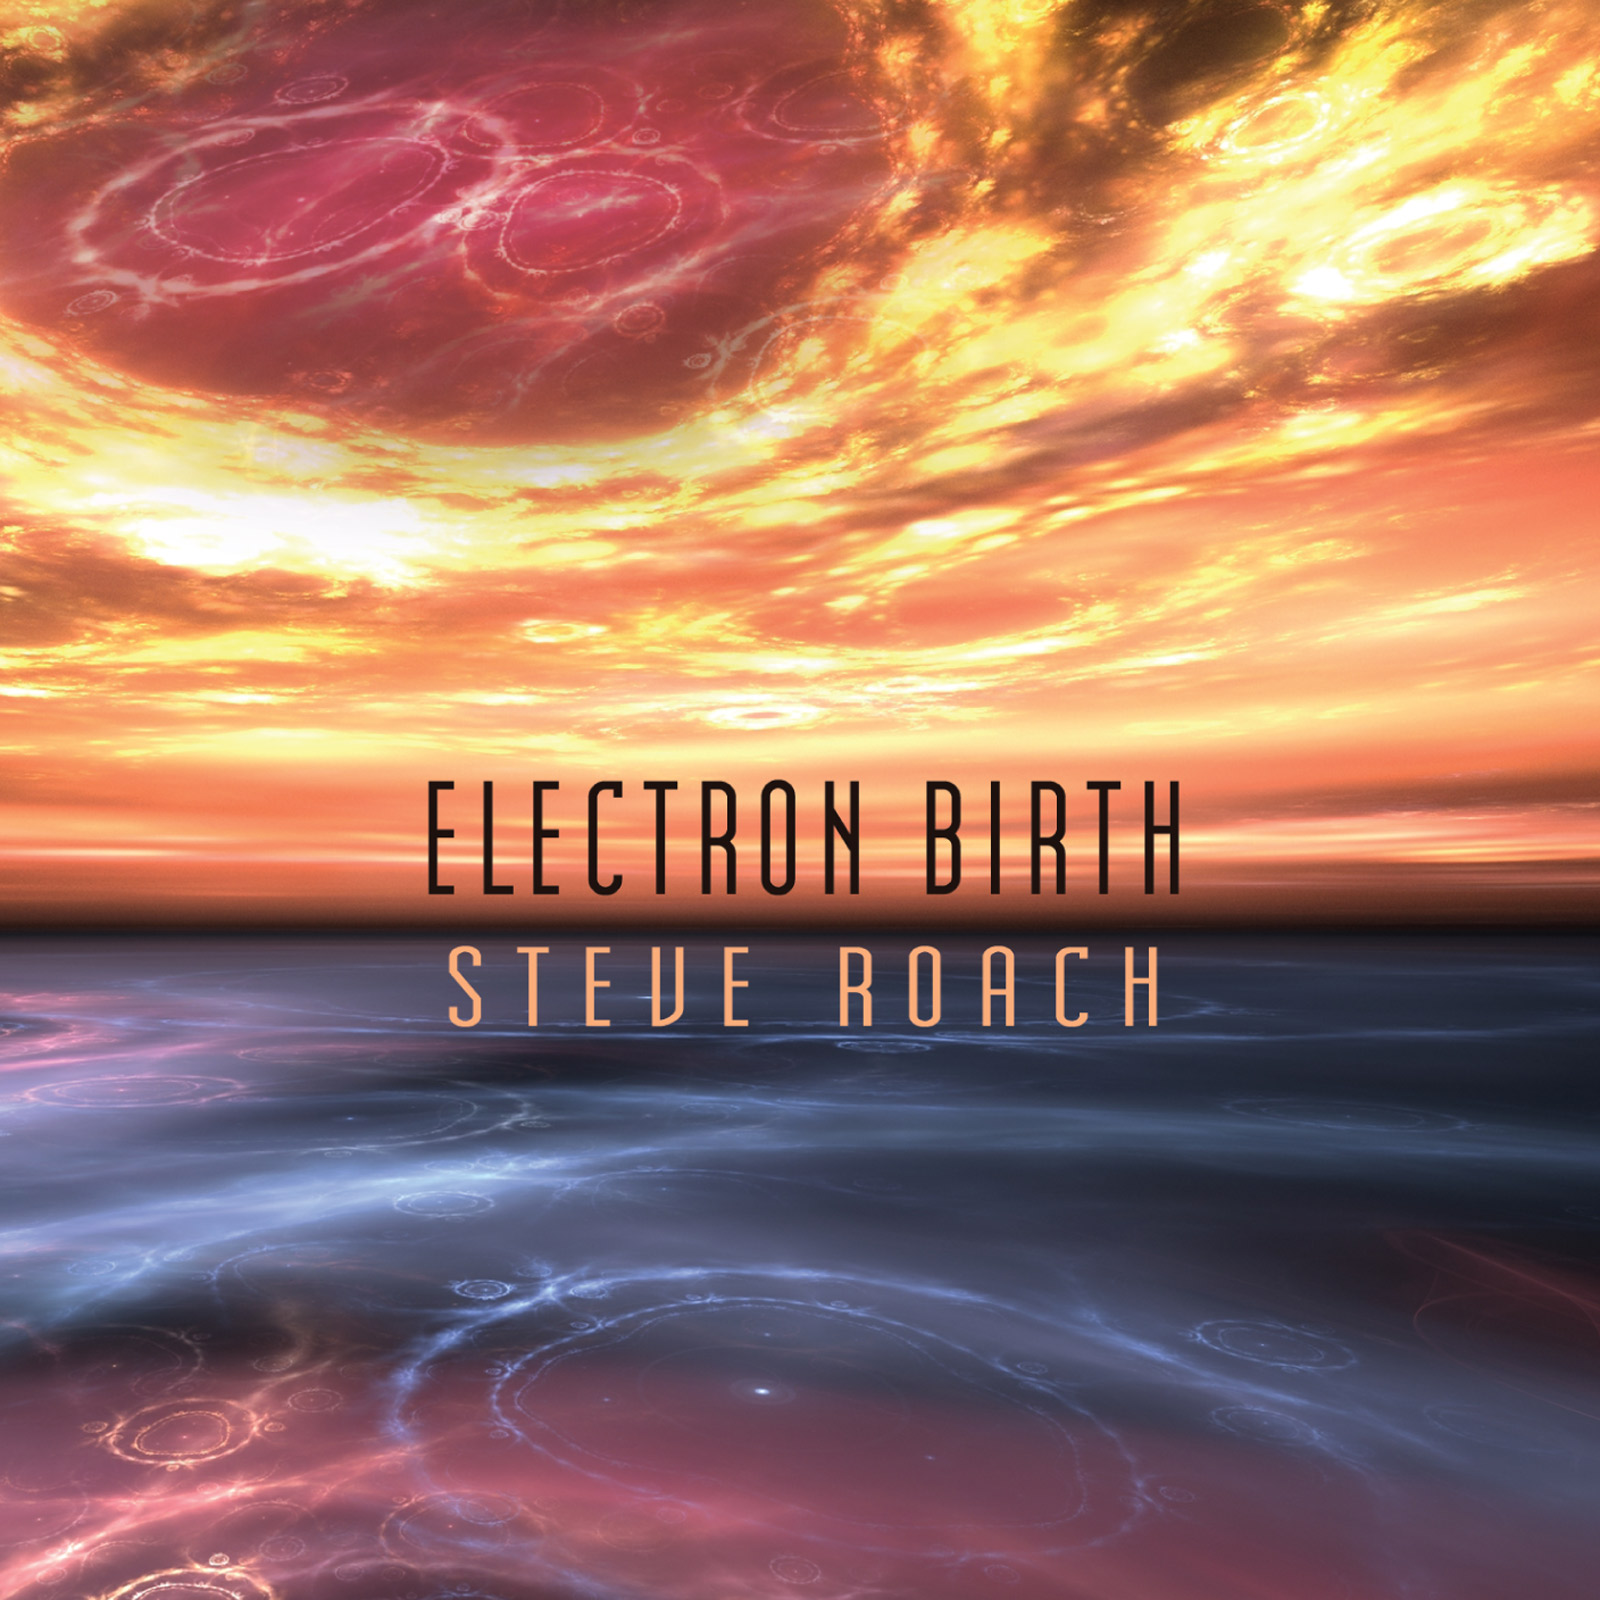 Electron Birth Cover art